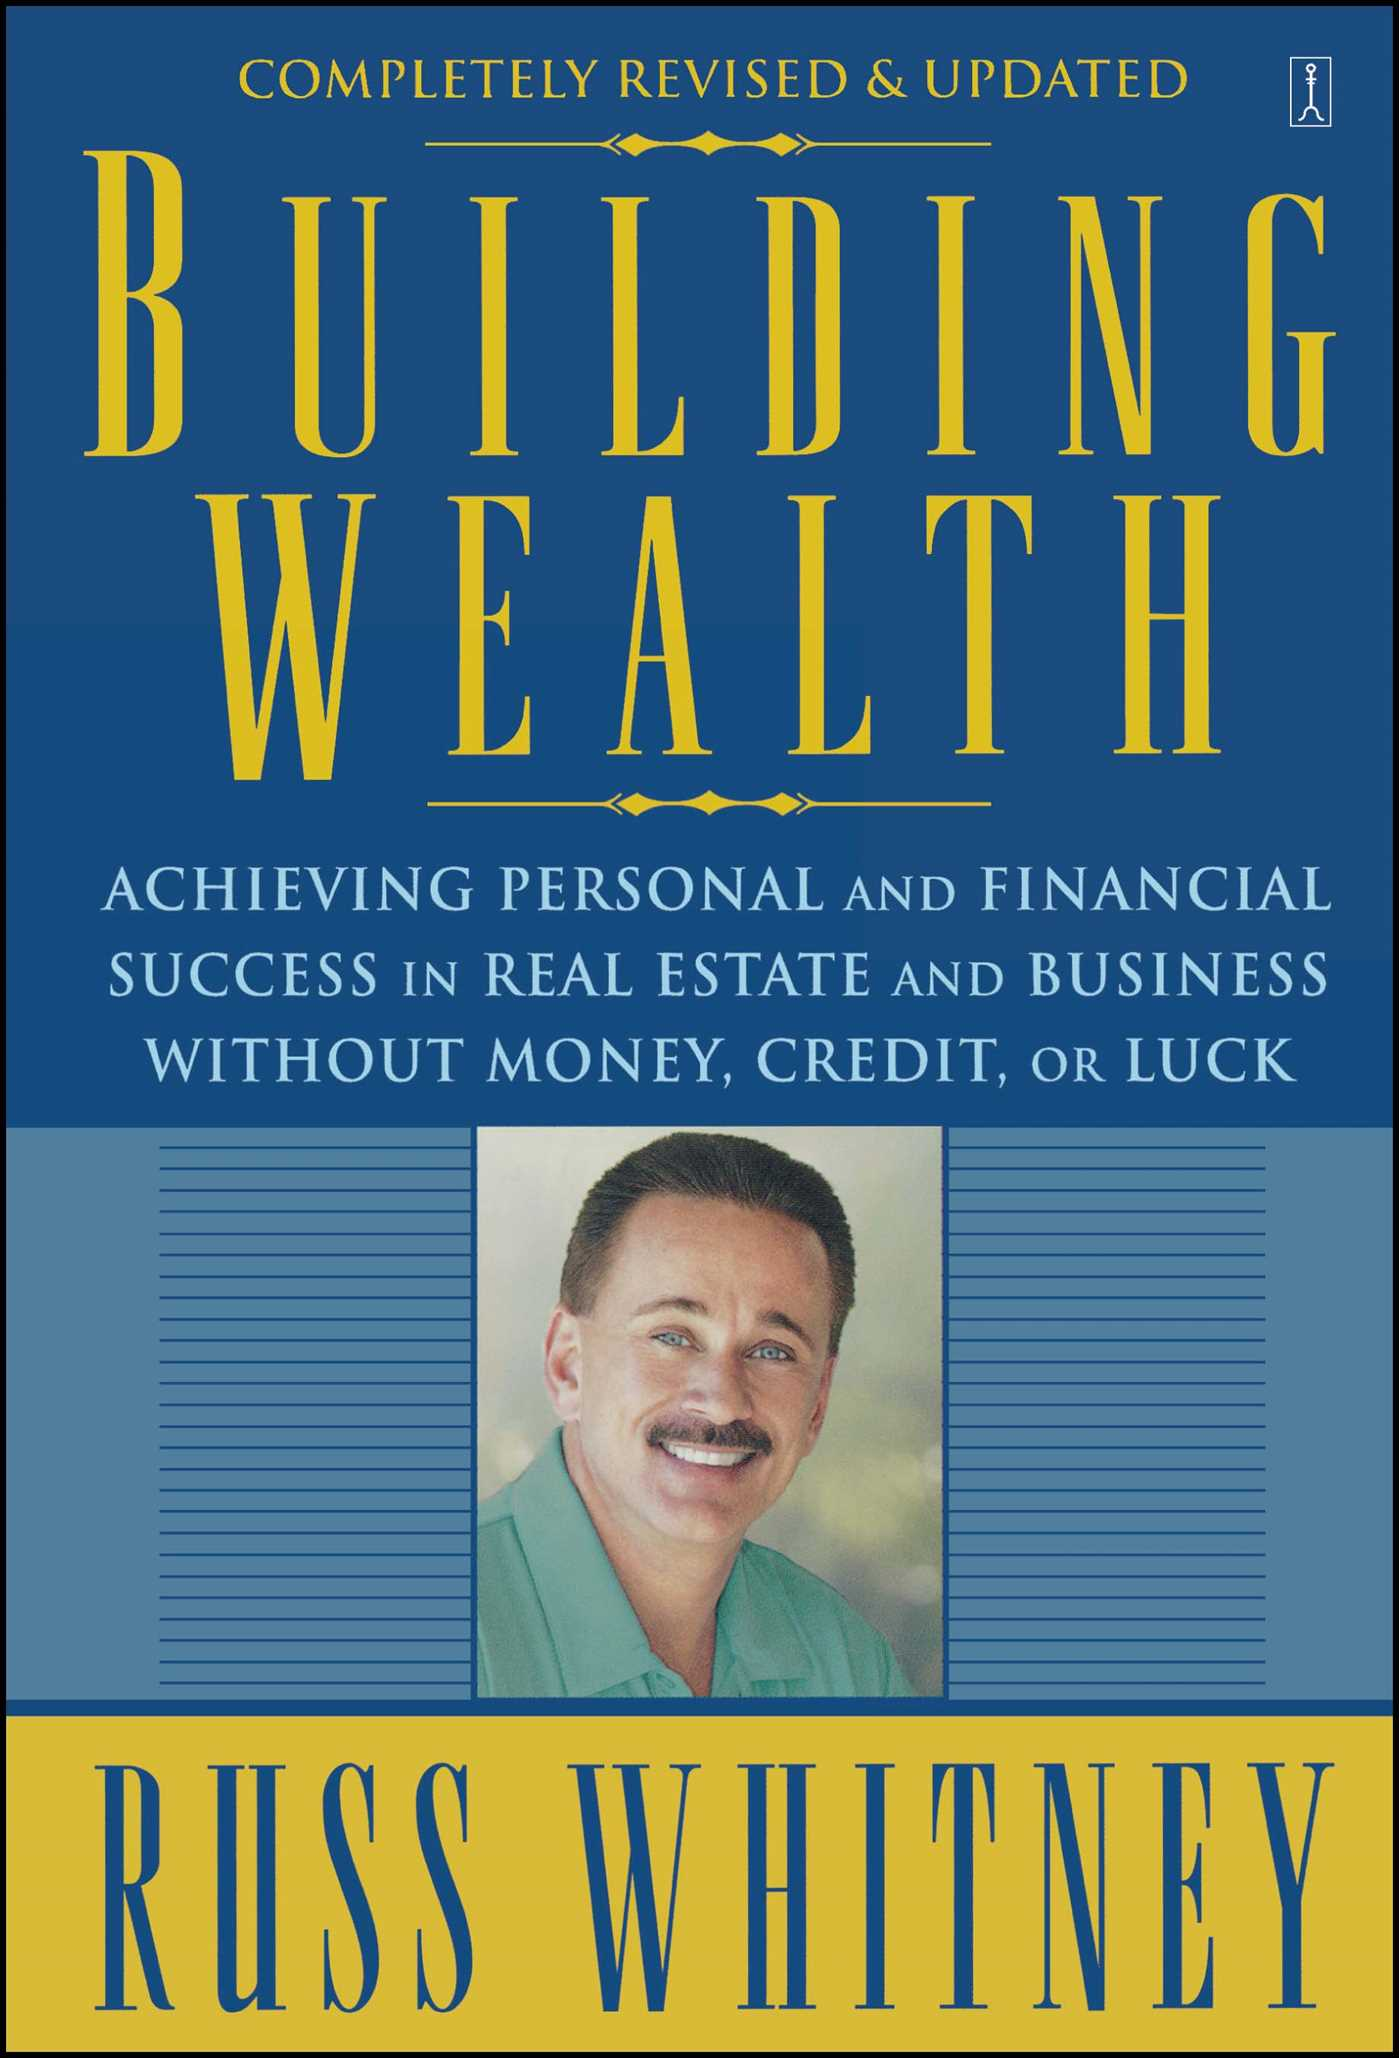 Building wealth 9780743291613 hr